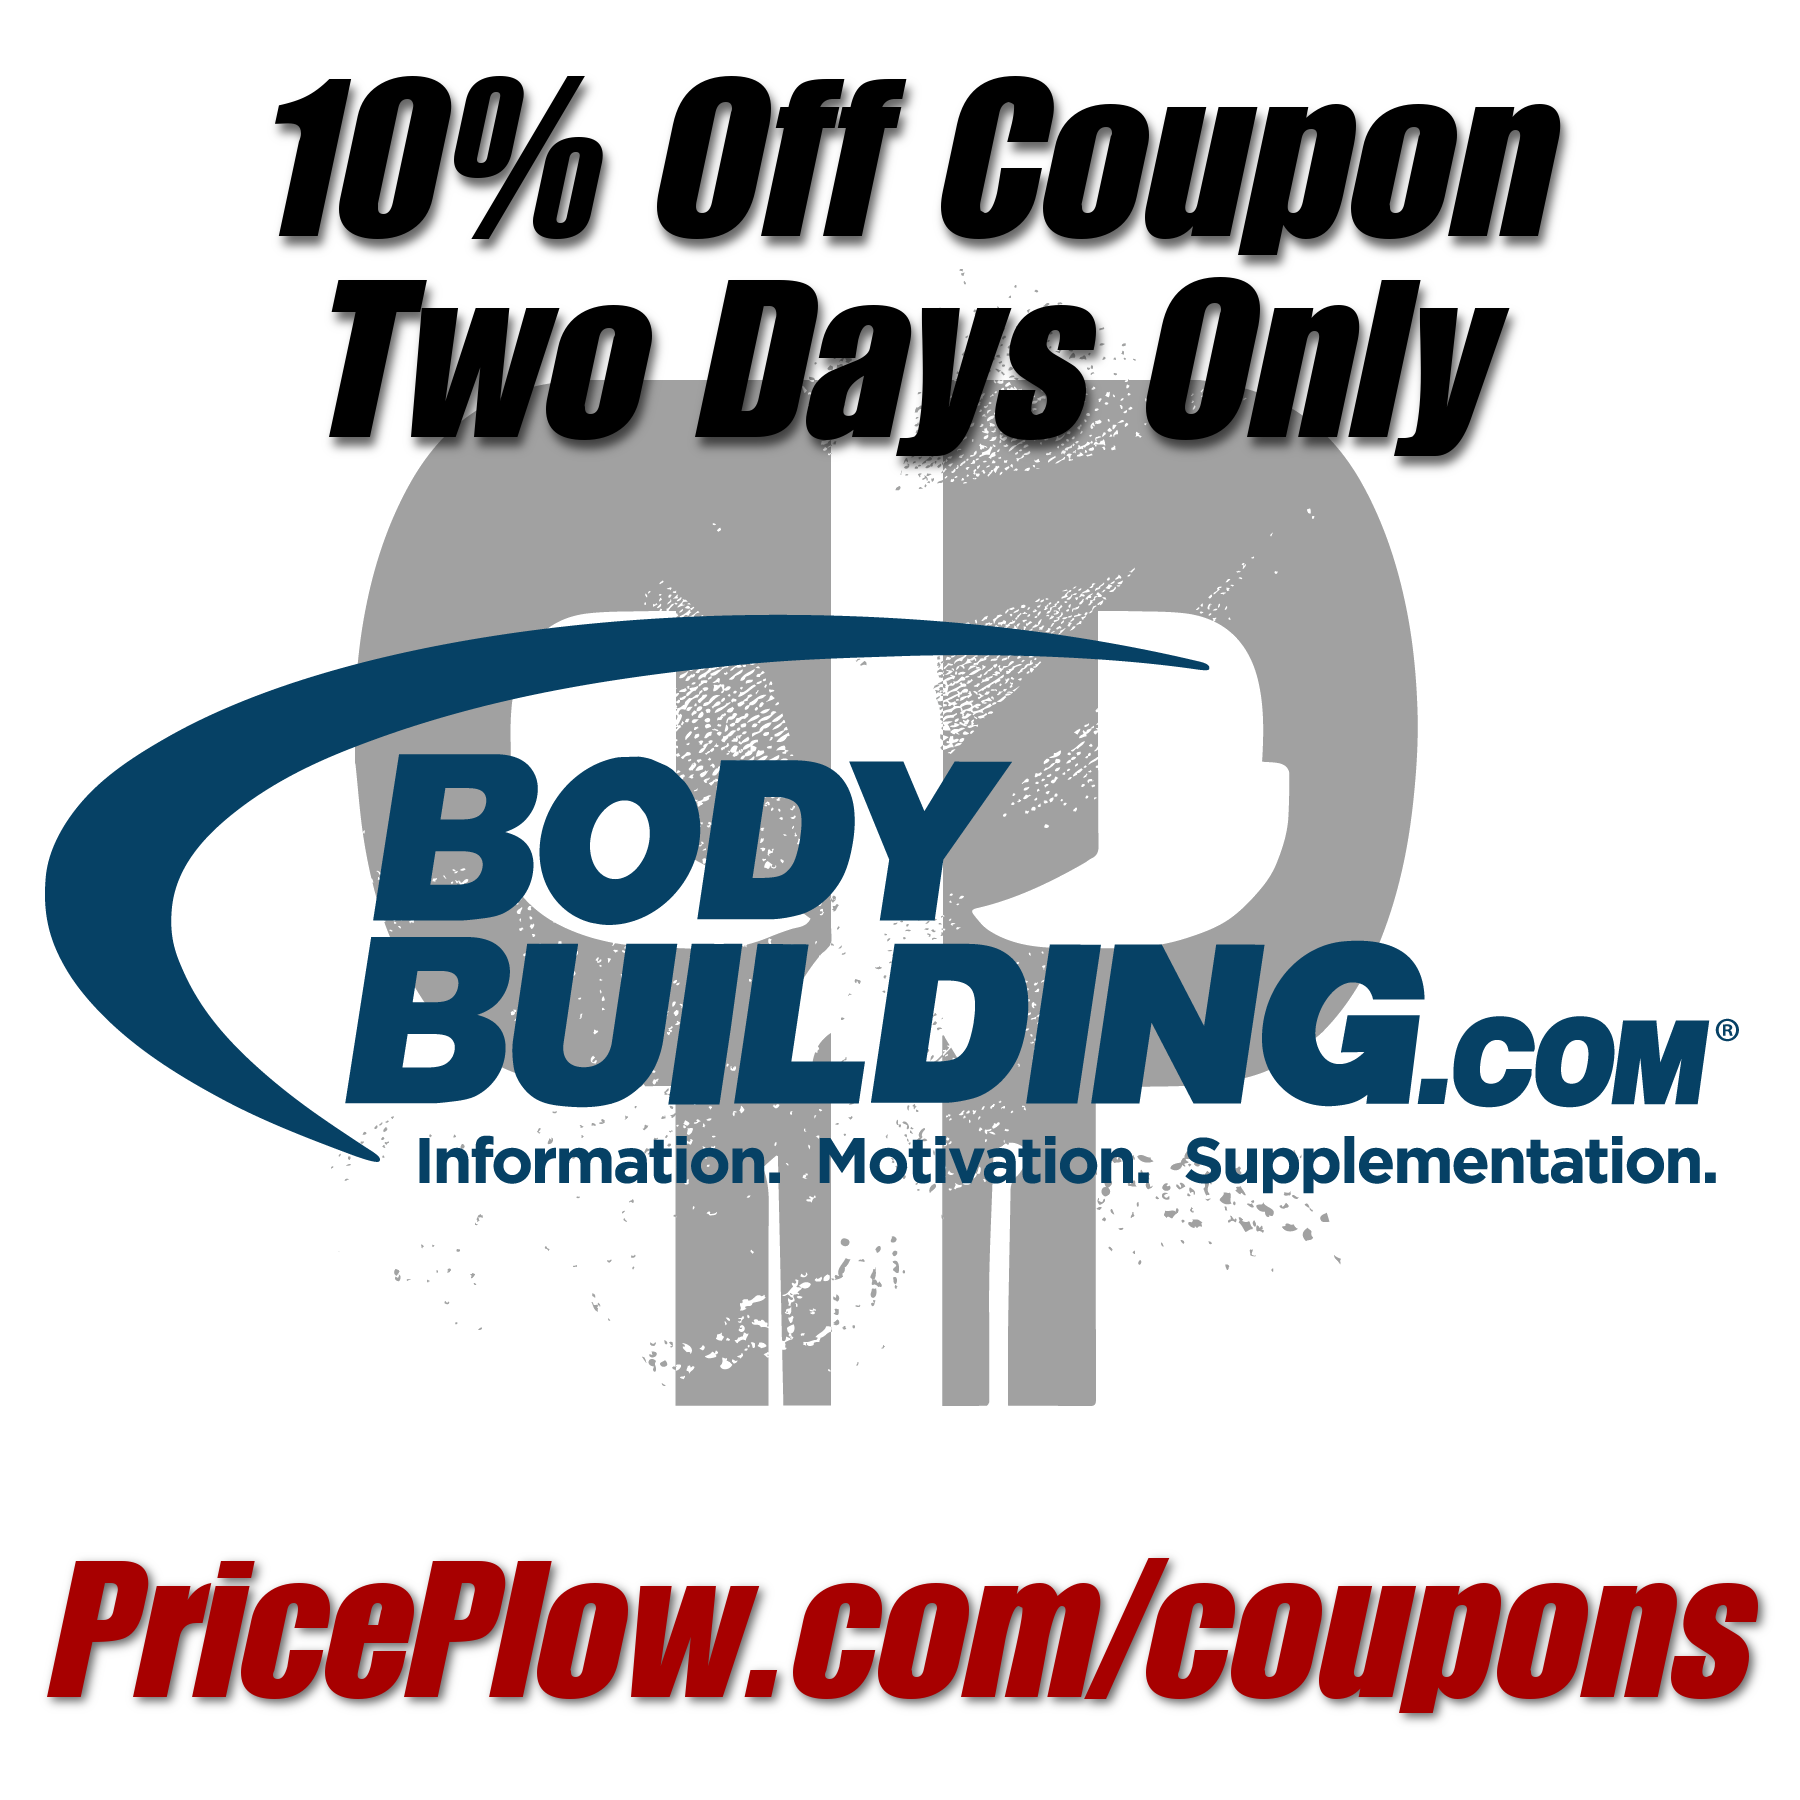 Bodybuilding.com 10% off Coupon!